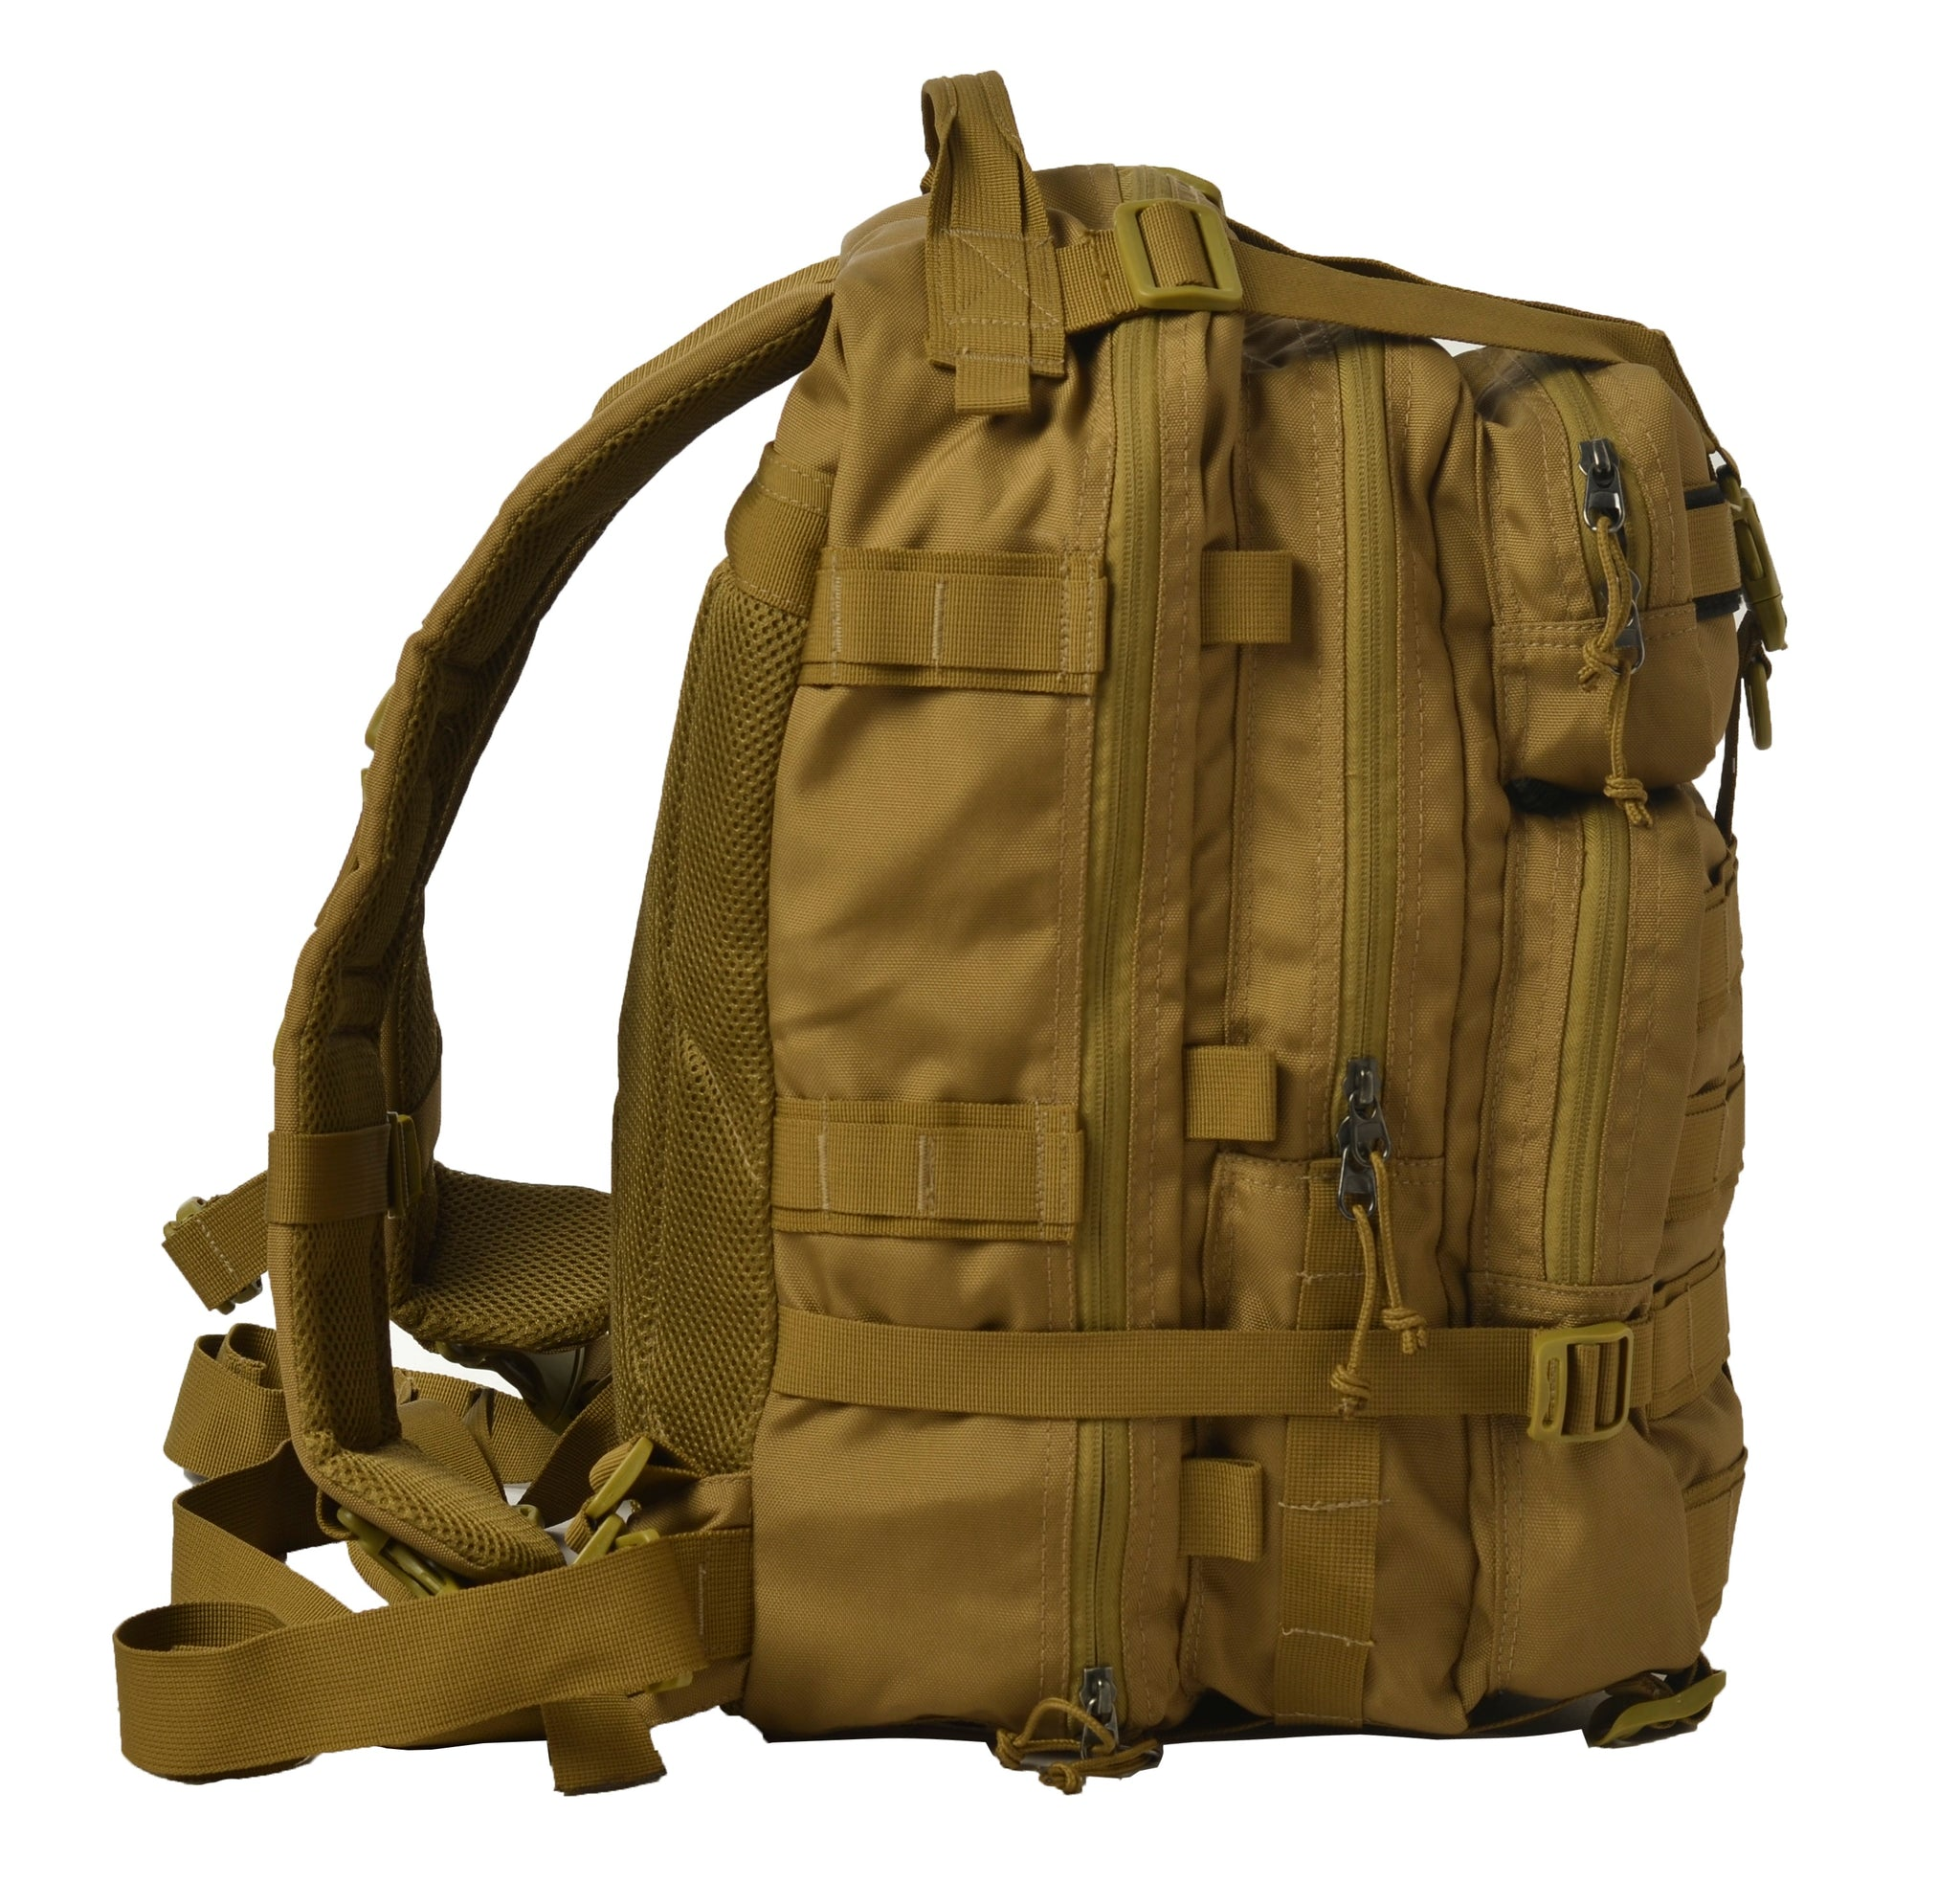 F Gear Military Tactical 29 Liter Backpack (Khaki)